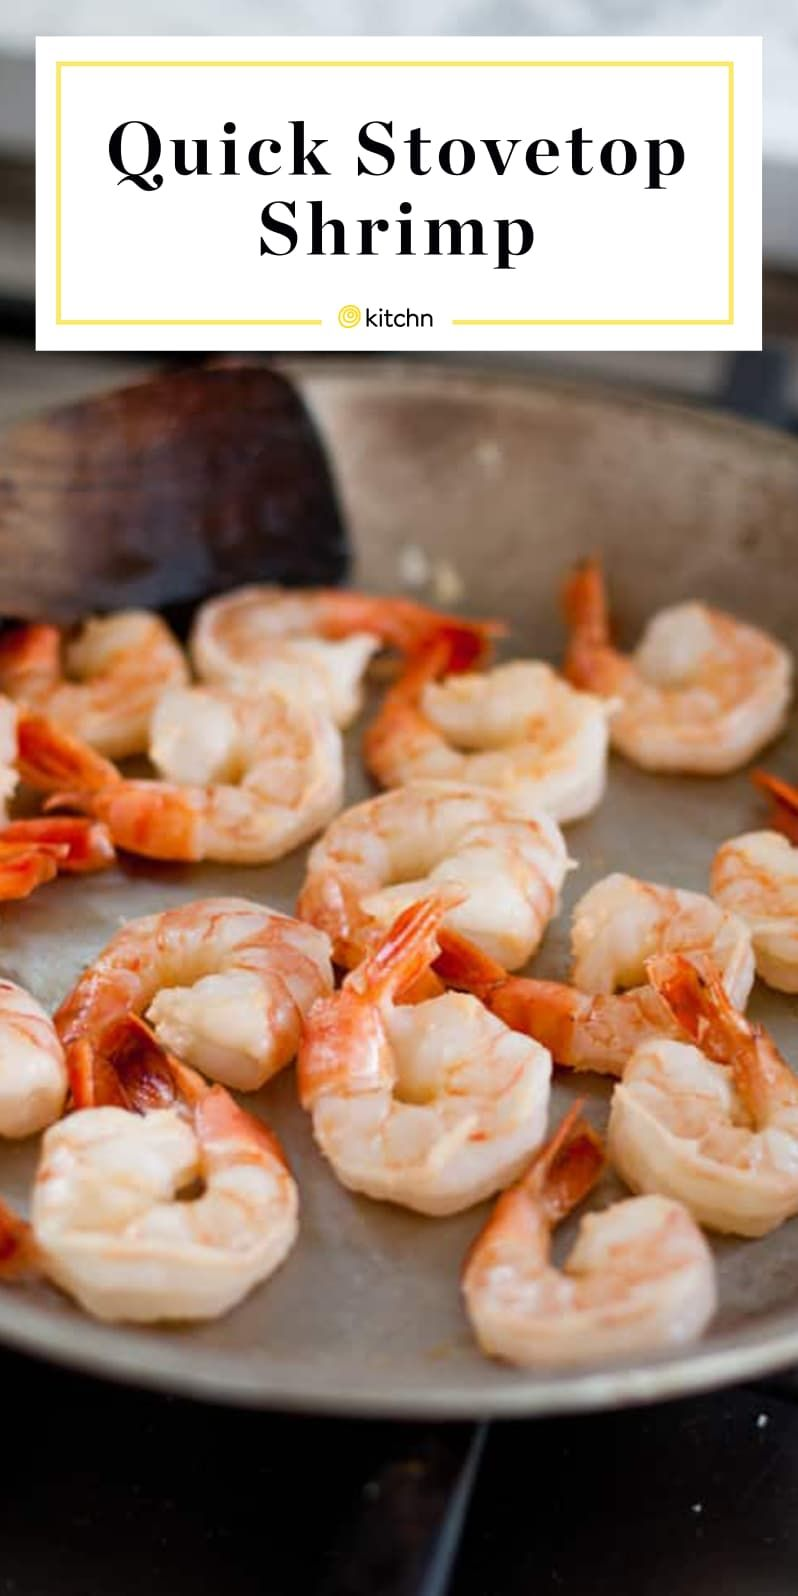 Photo of How To Quickly Cook Shrimp on the Stovetop